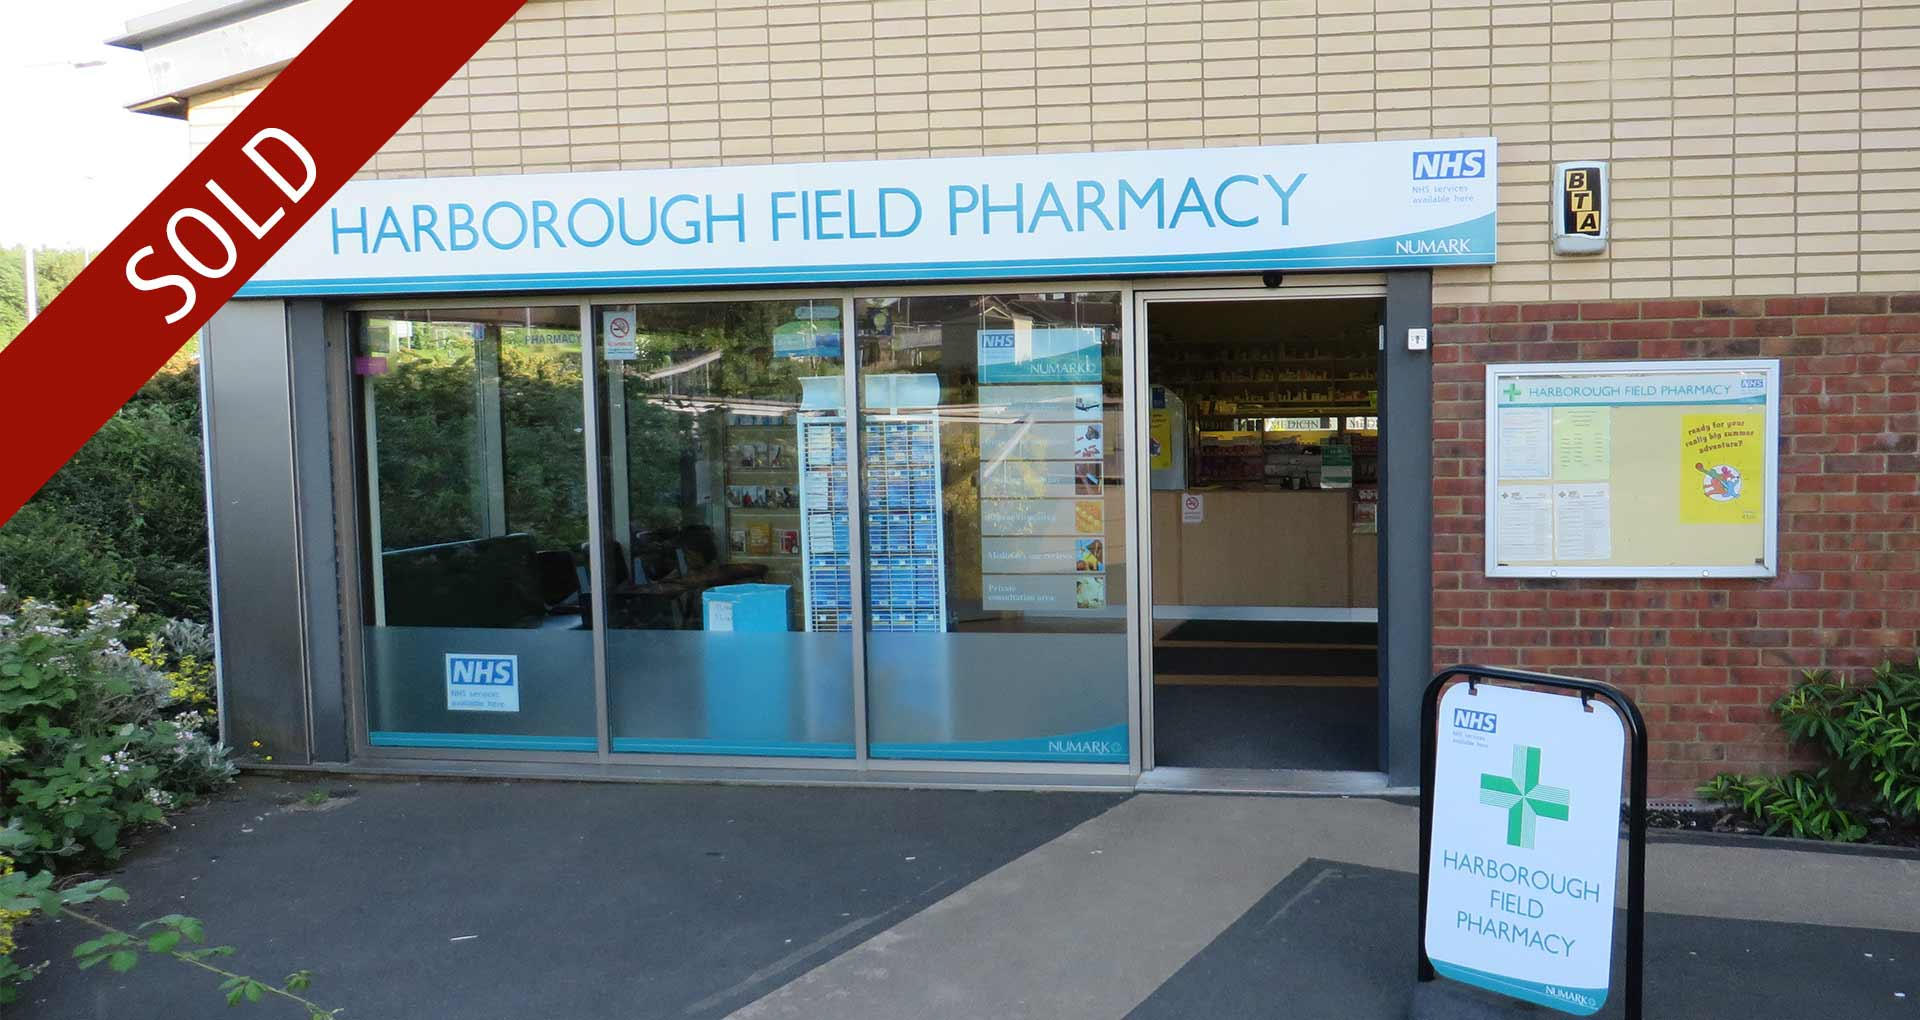 Harborough Field Pharmacy